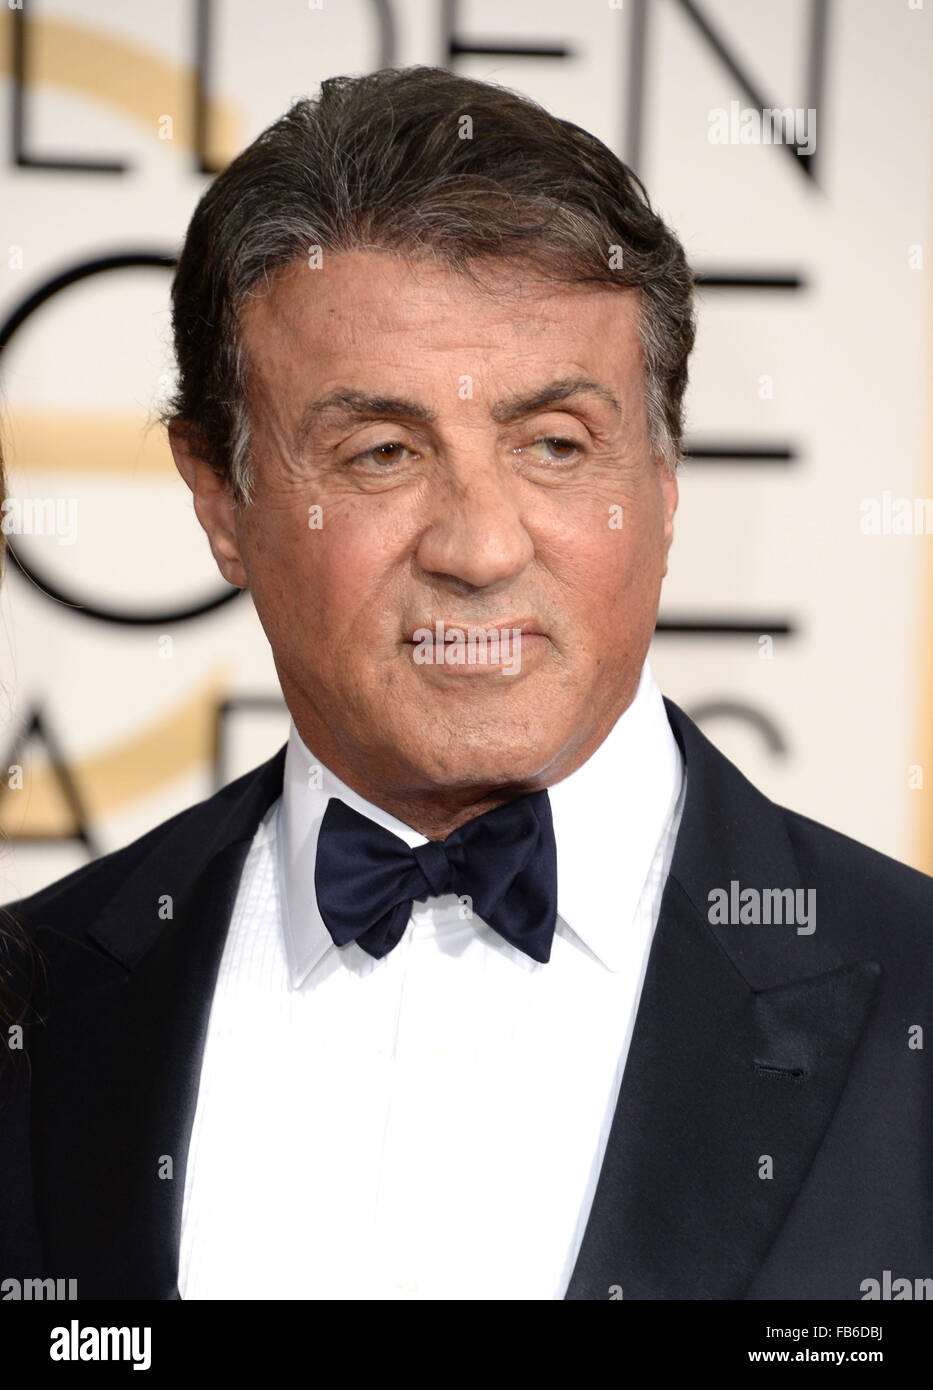 Los Angeles, California, USA. 10th January, 2016. Sylvester Stallone arrives at the Golden Globes, Los Angeles, - Stock Image